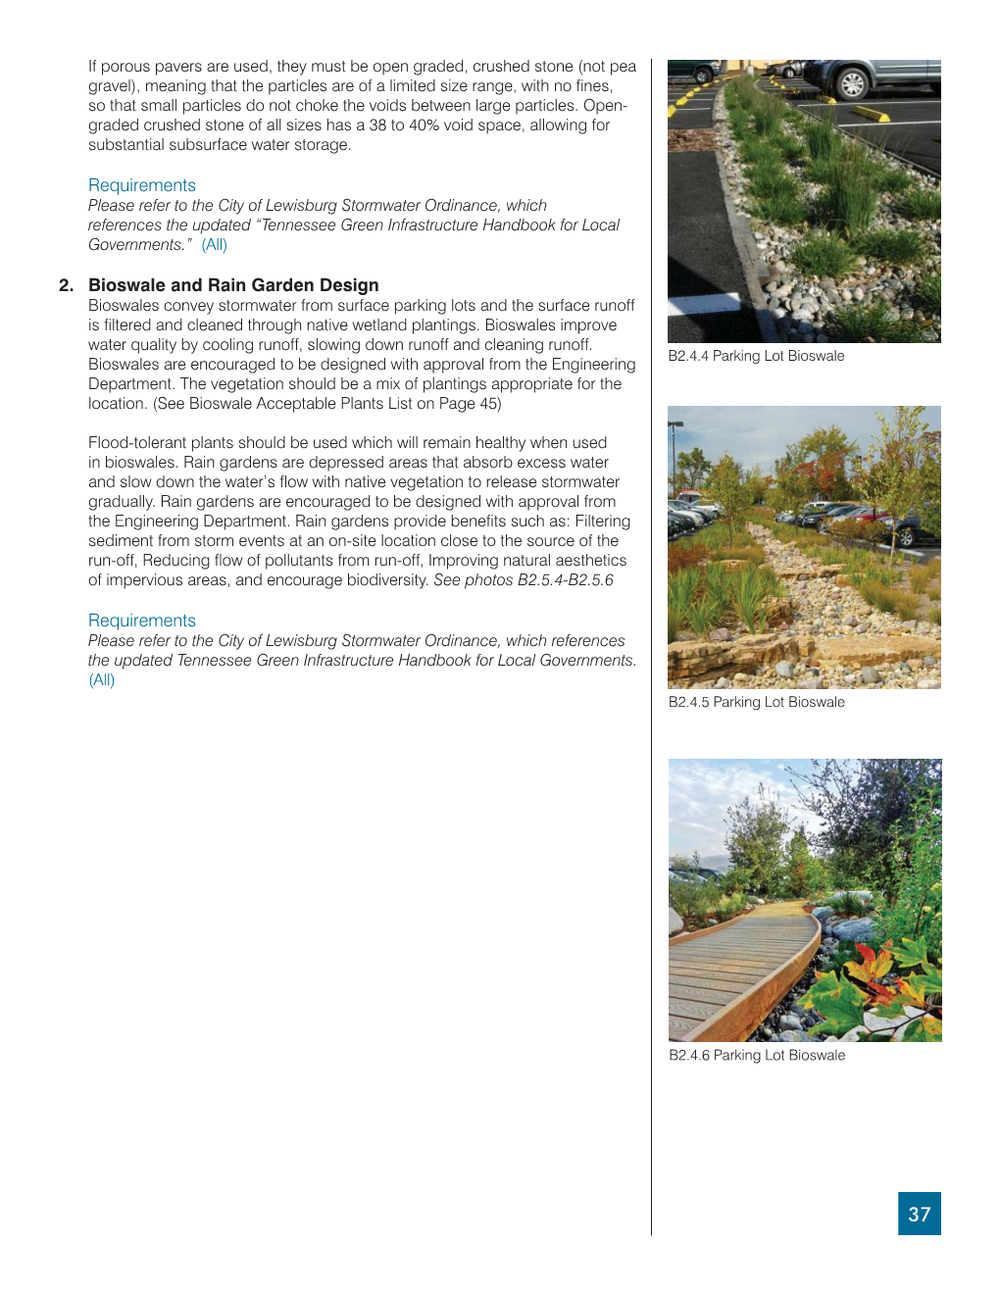 Example of Bioswale Guidelines